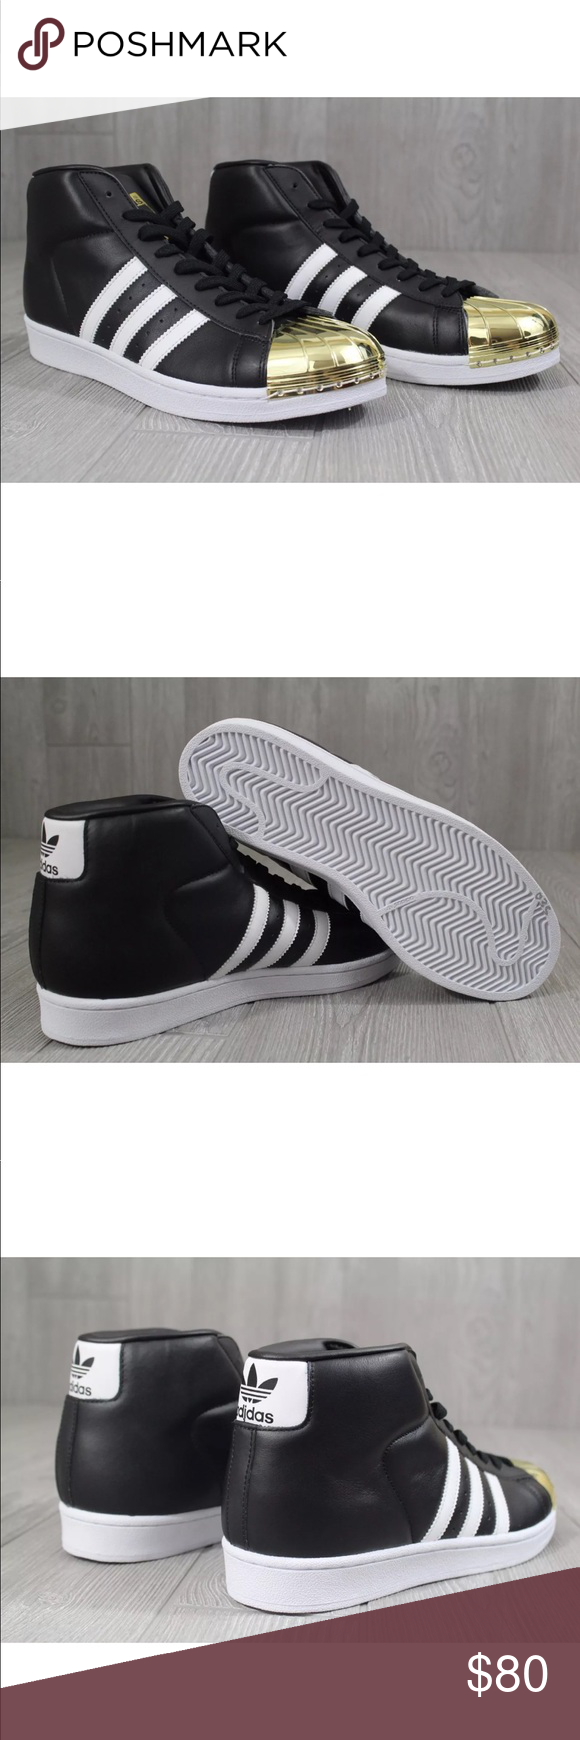 154af05f128473 Adidas Pro Model Gold Toe Black White Gold Shell Adidas Pro Model Product  Description  Leather-And-Synthetic Rubber sole 3 Stripes Metal shell toe ...